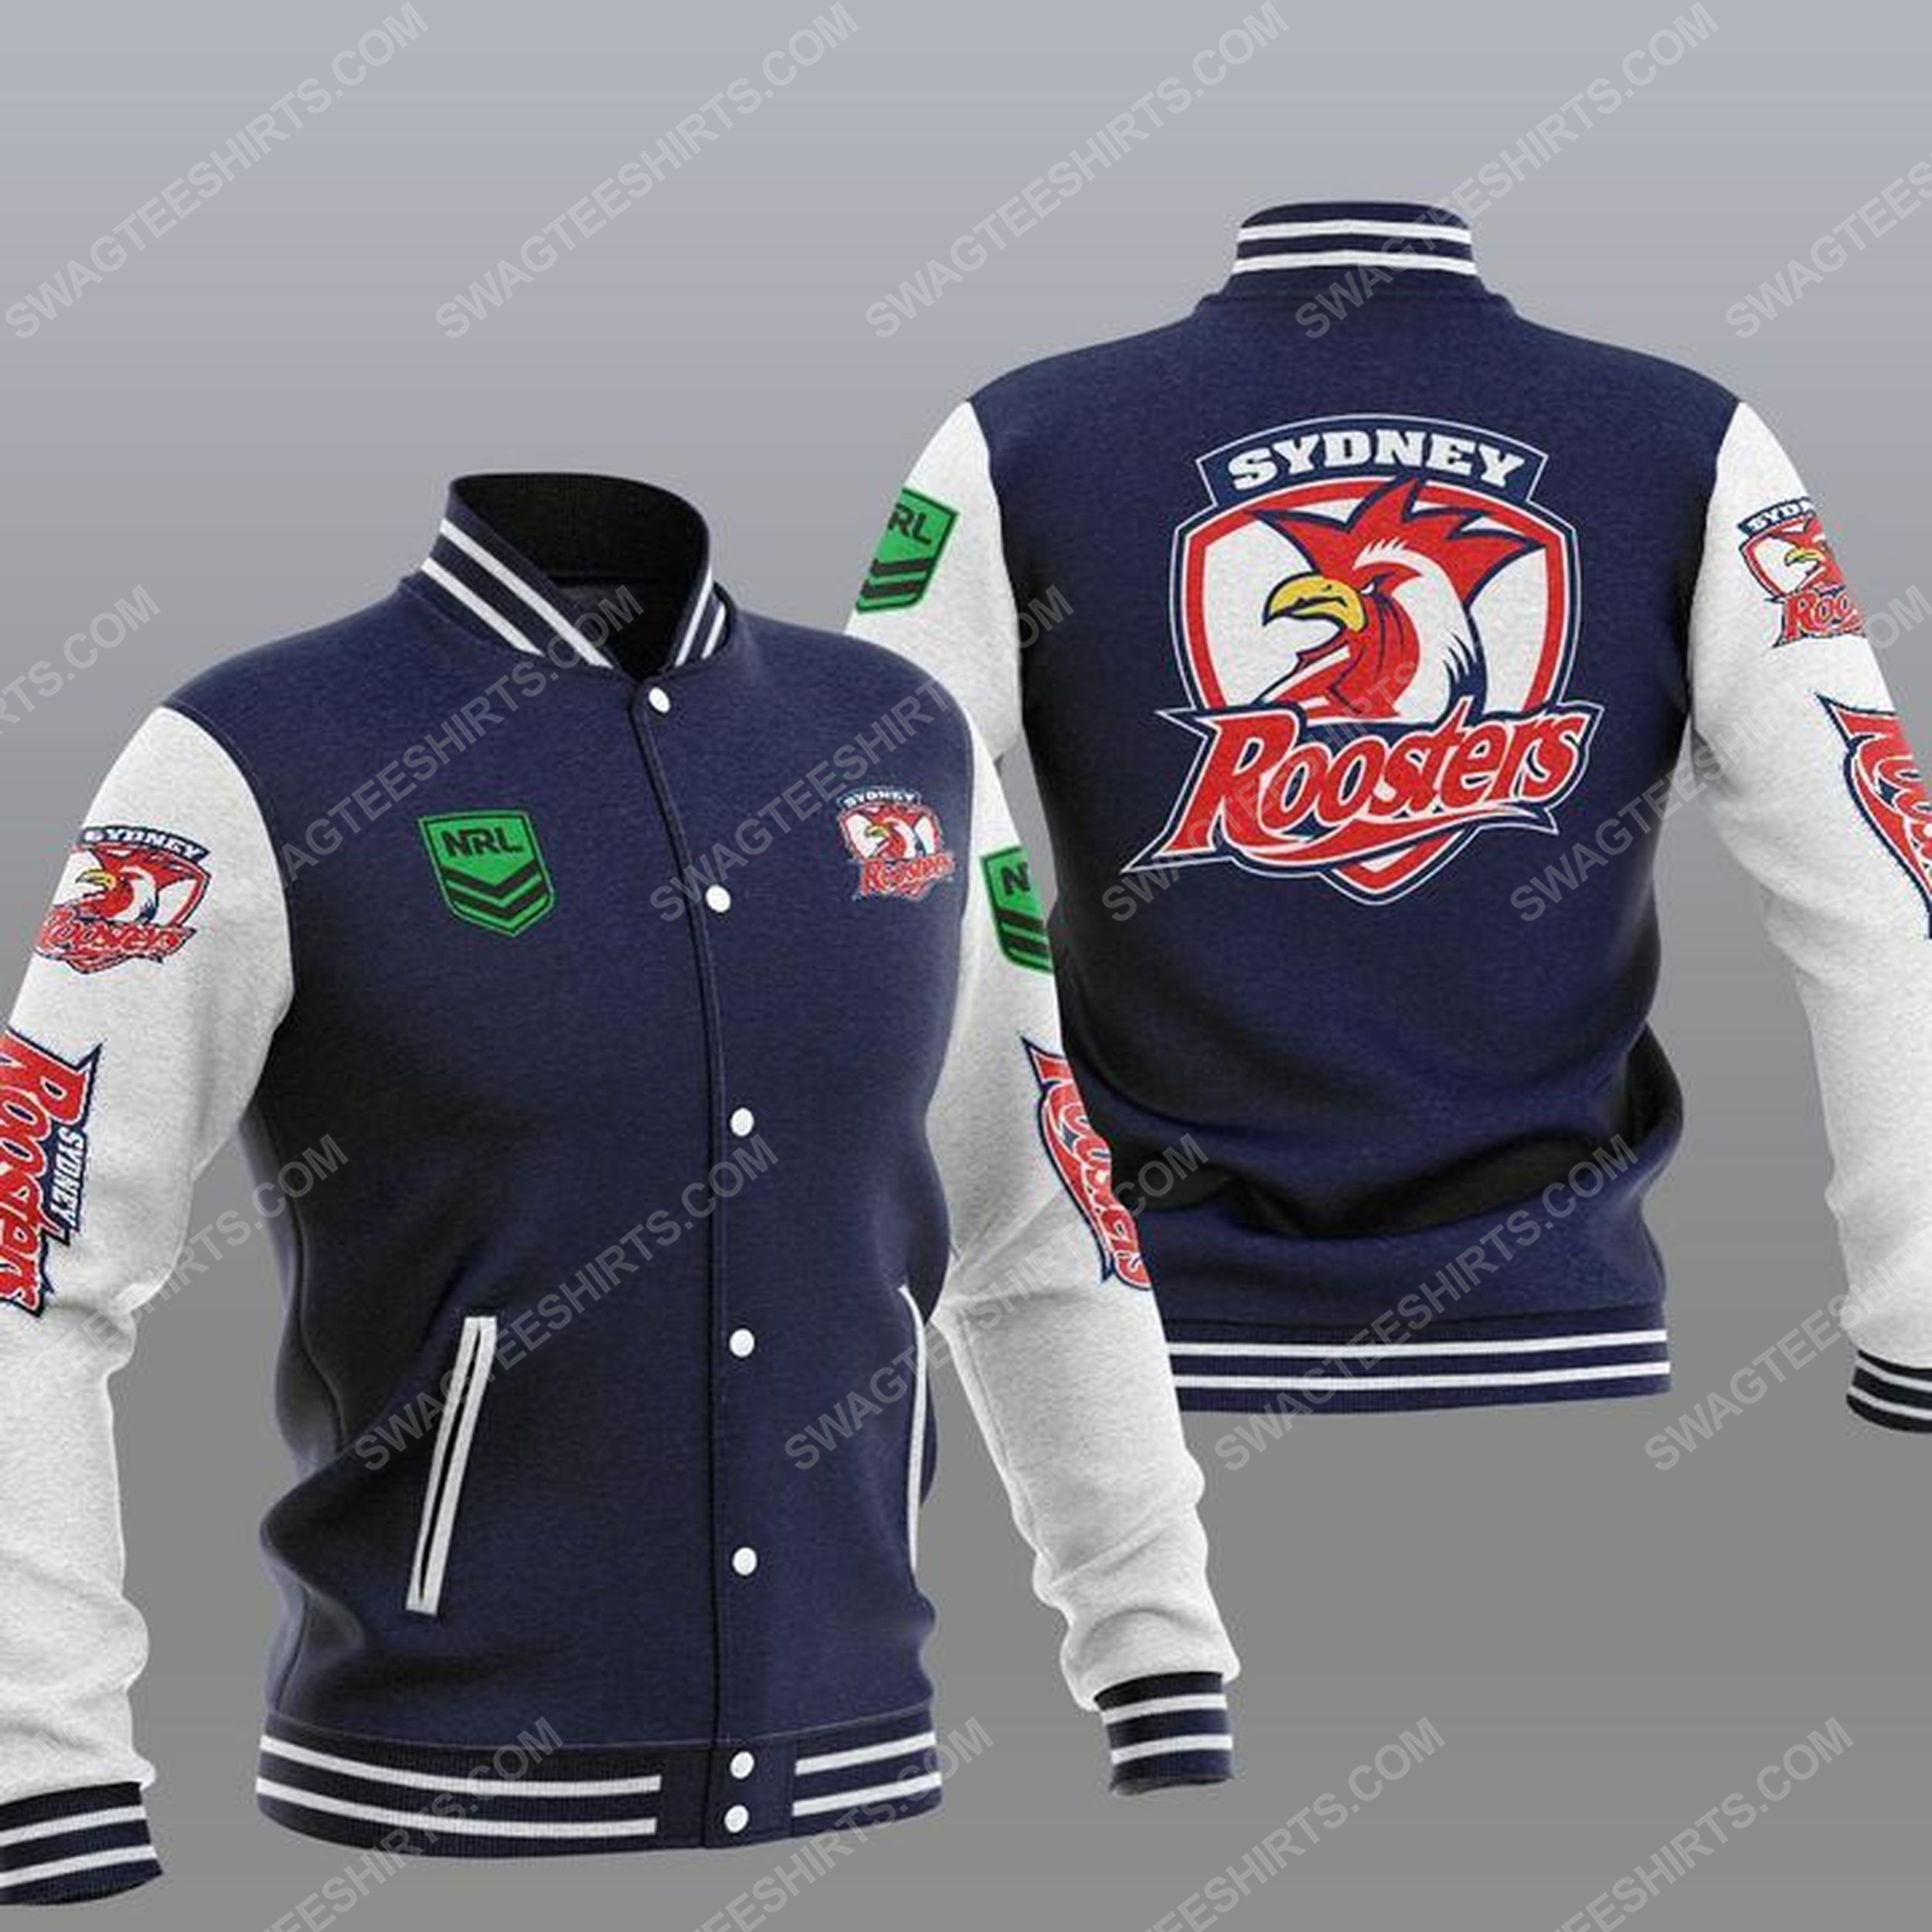 The sydney roosters nfl all over print baseball jacket - navy 1